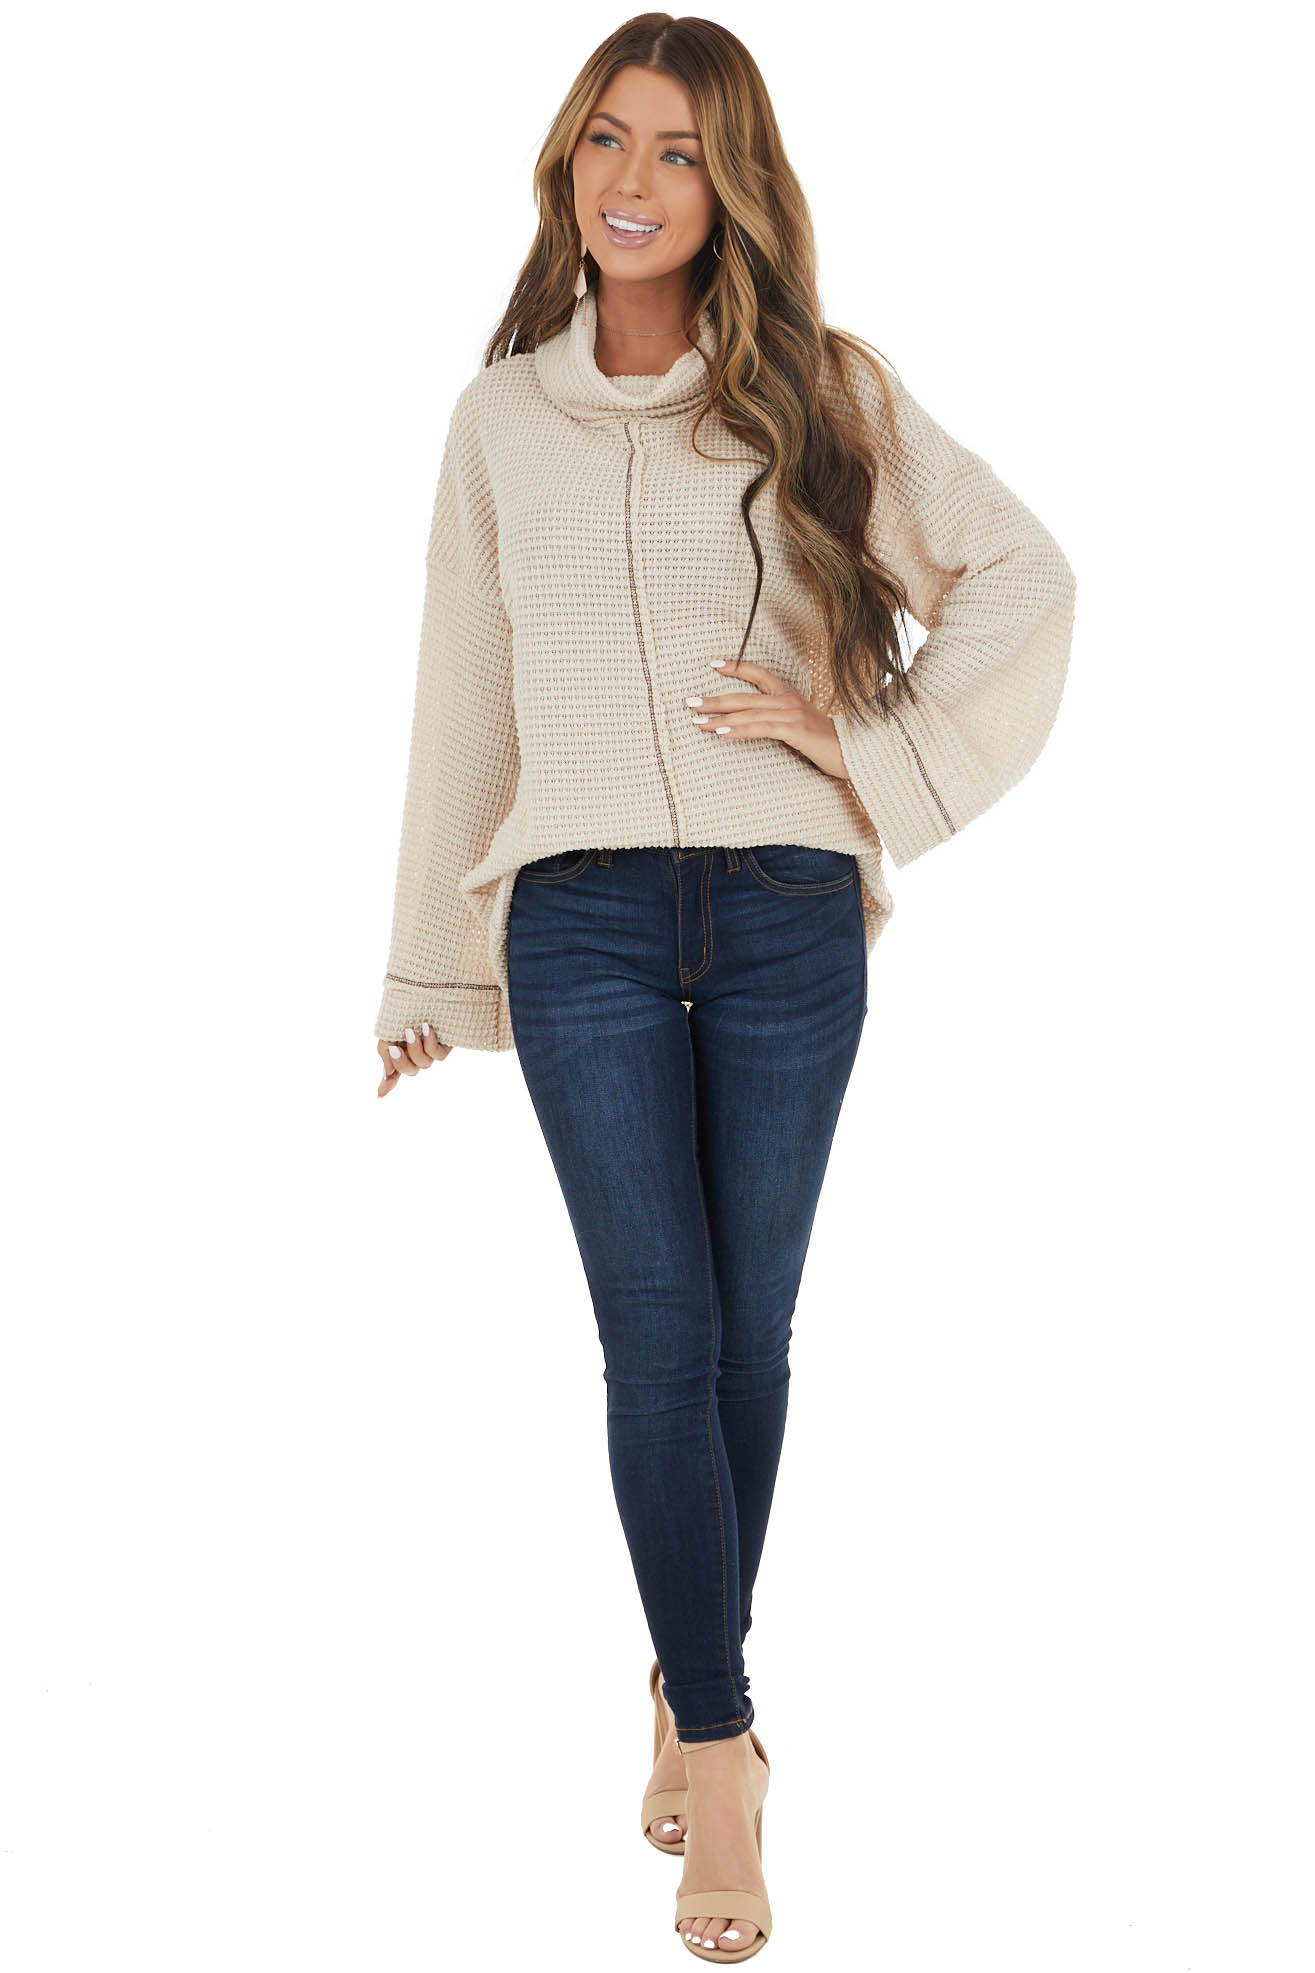 Oatmeal Waffle Knit Long Sleeve Top with Cowl Neckline